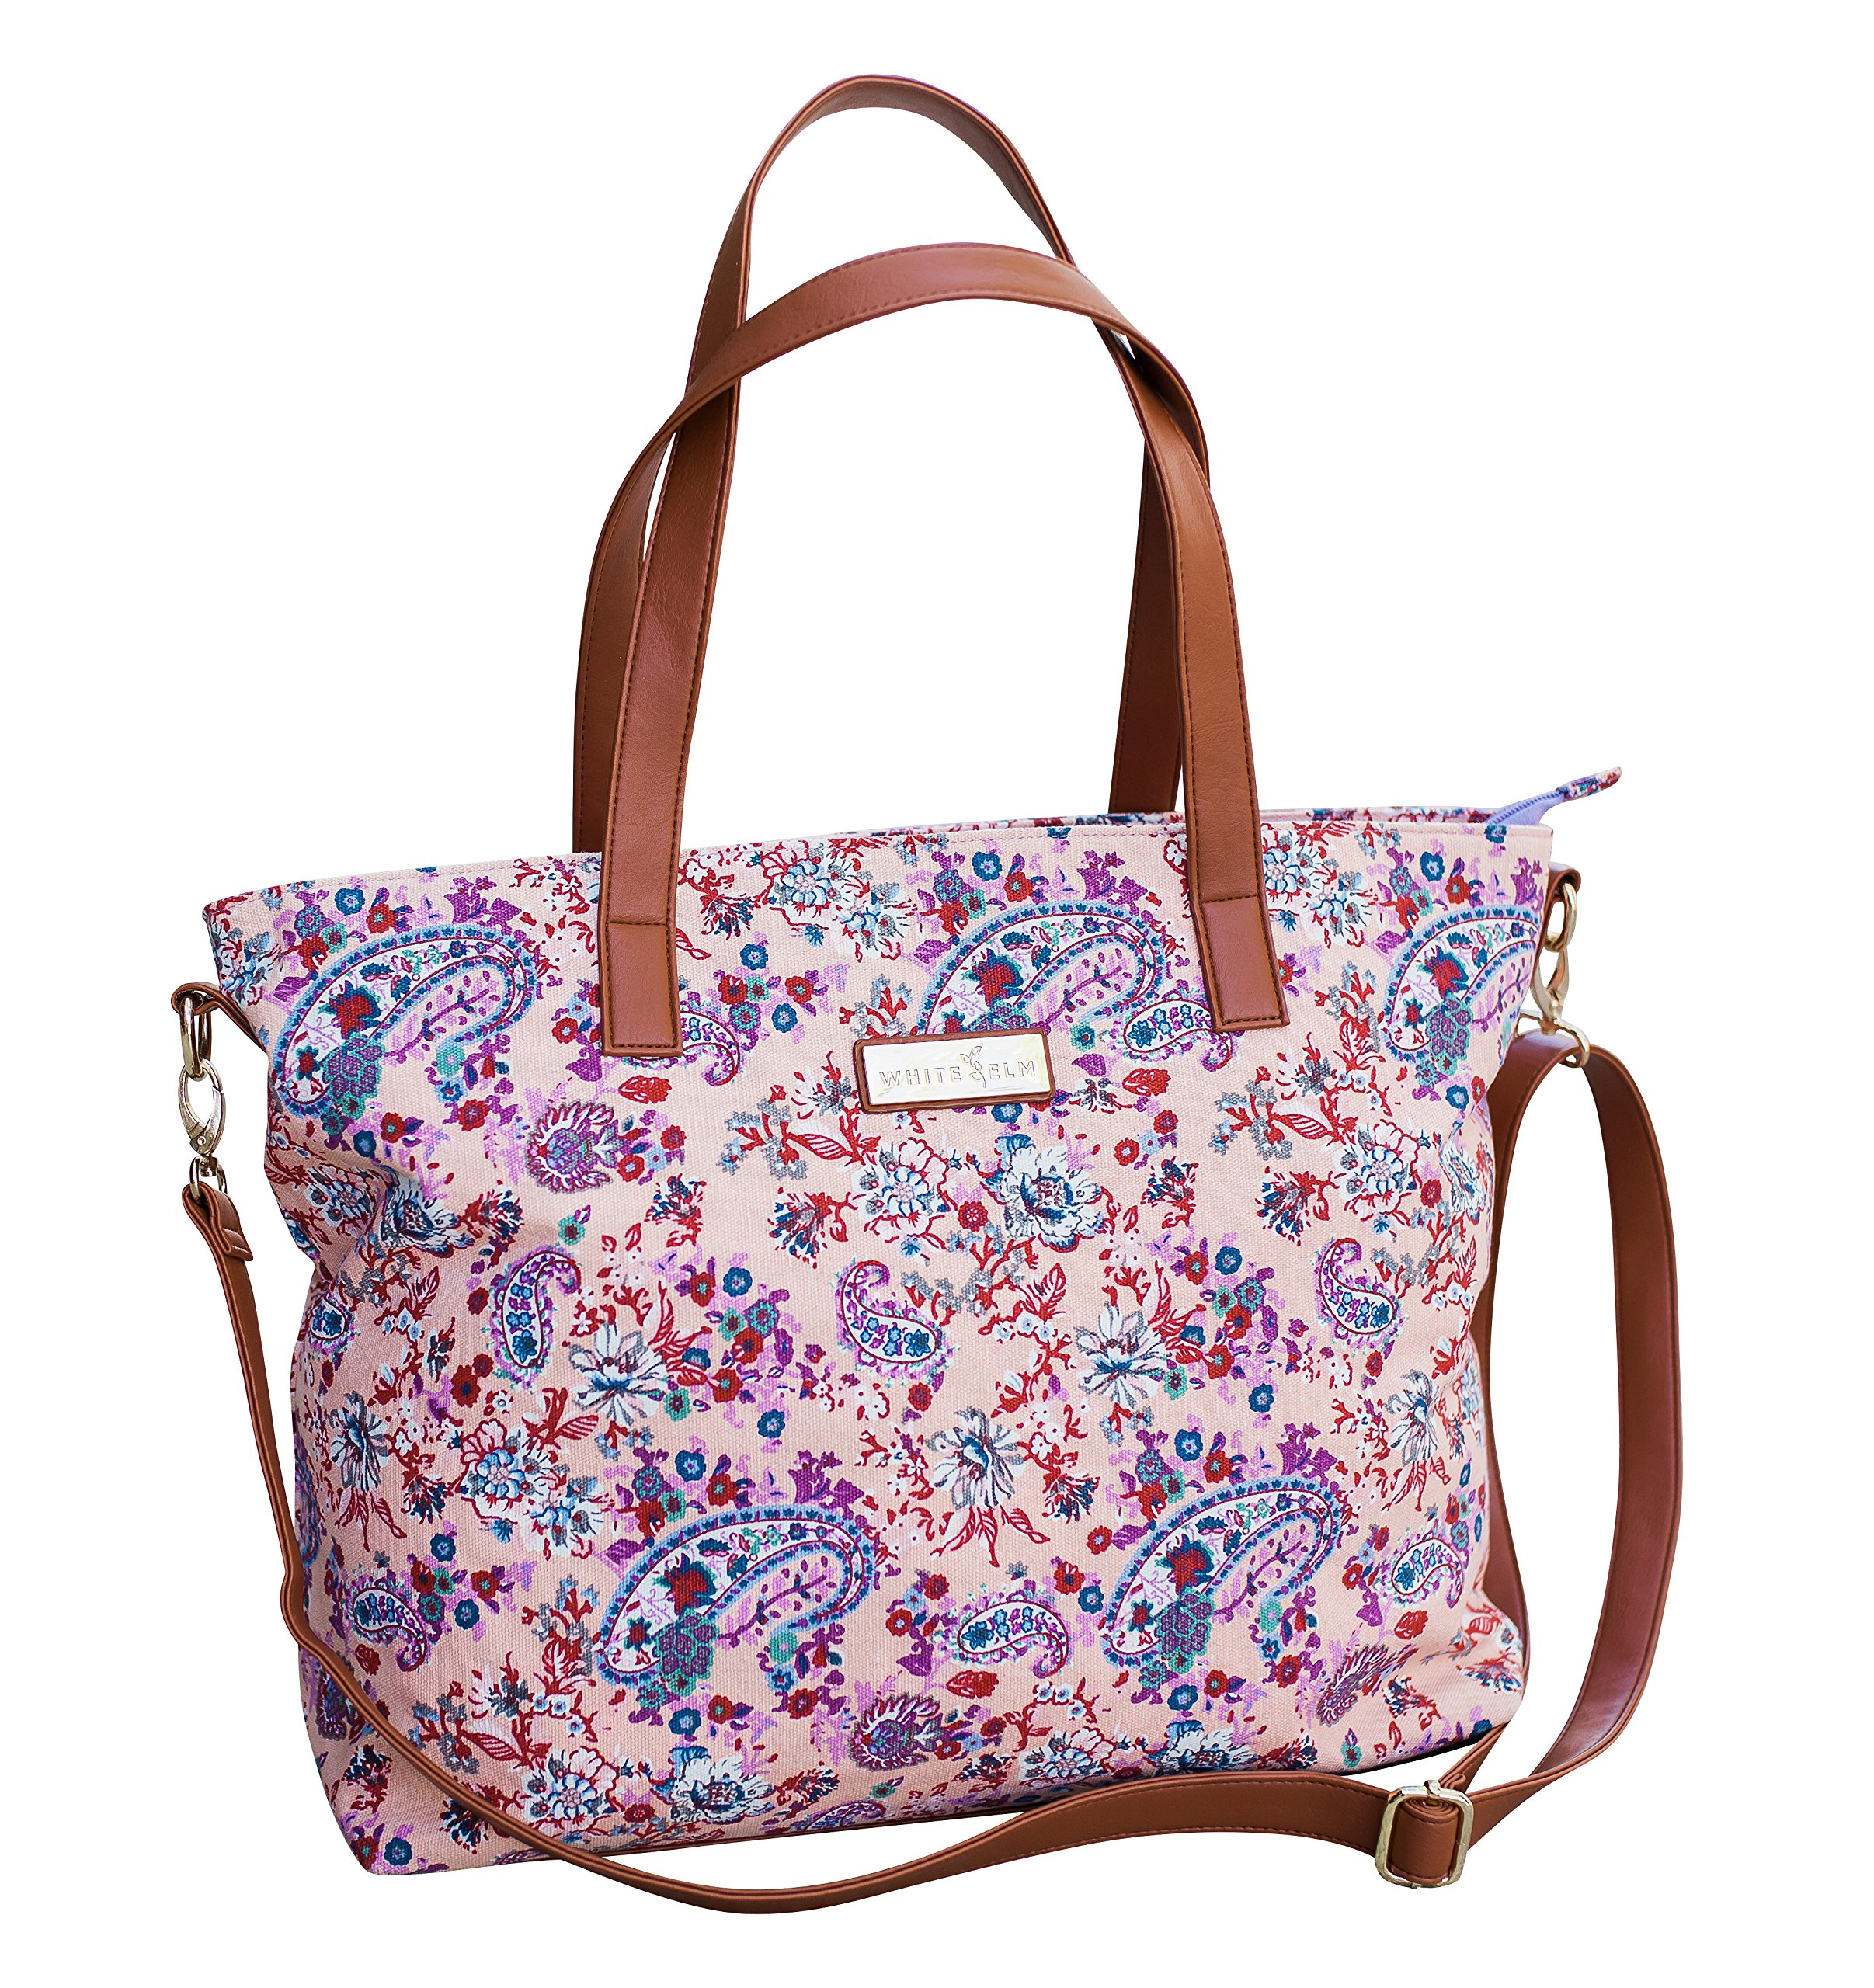 Dahlia Floral Tote Bag by White Elm | Limited Edition | Summer Beach/Pool Tote